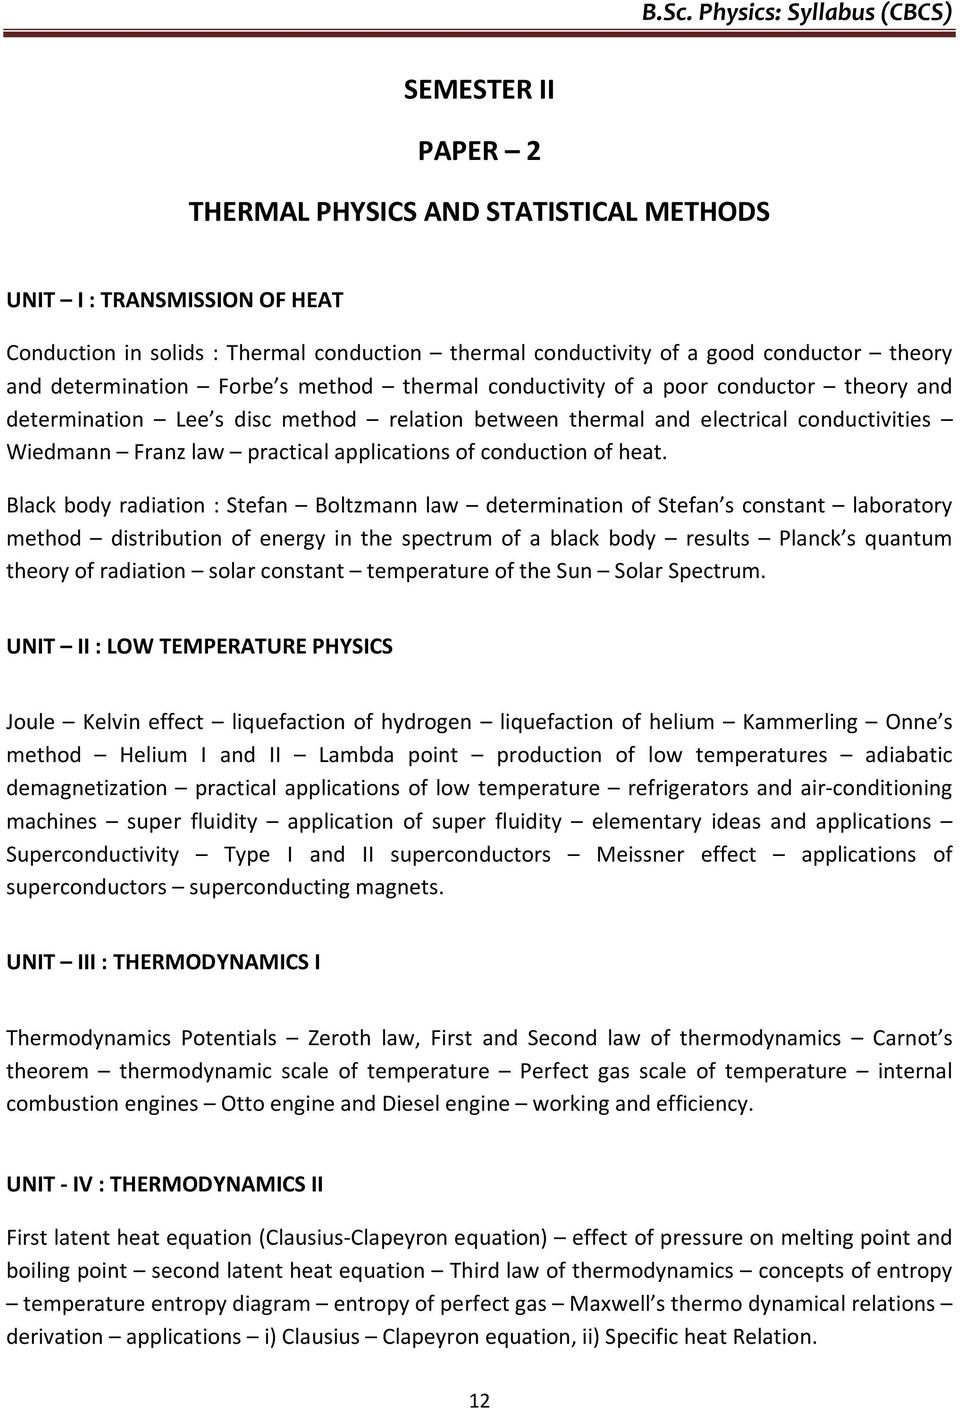 thermal conductivity essay An apparatus for measuring thermal conductivity employs an electrical heater sandwiched between two identical samples of diameter.